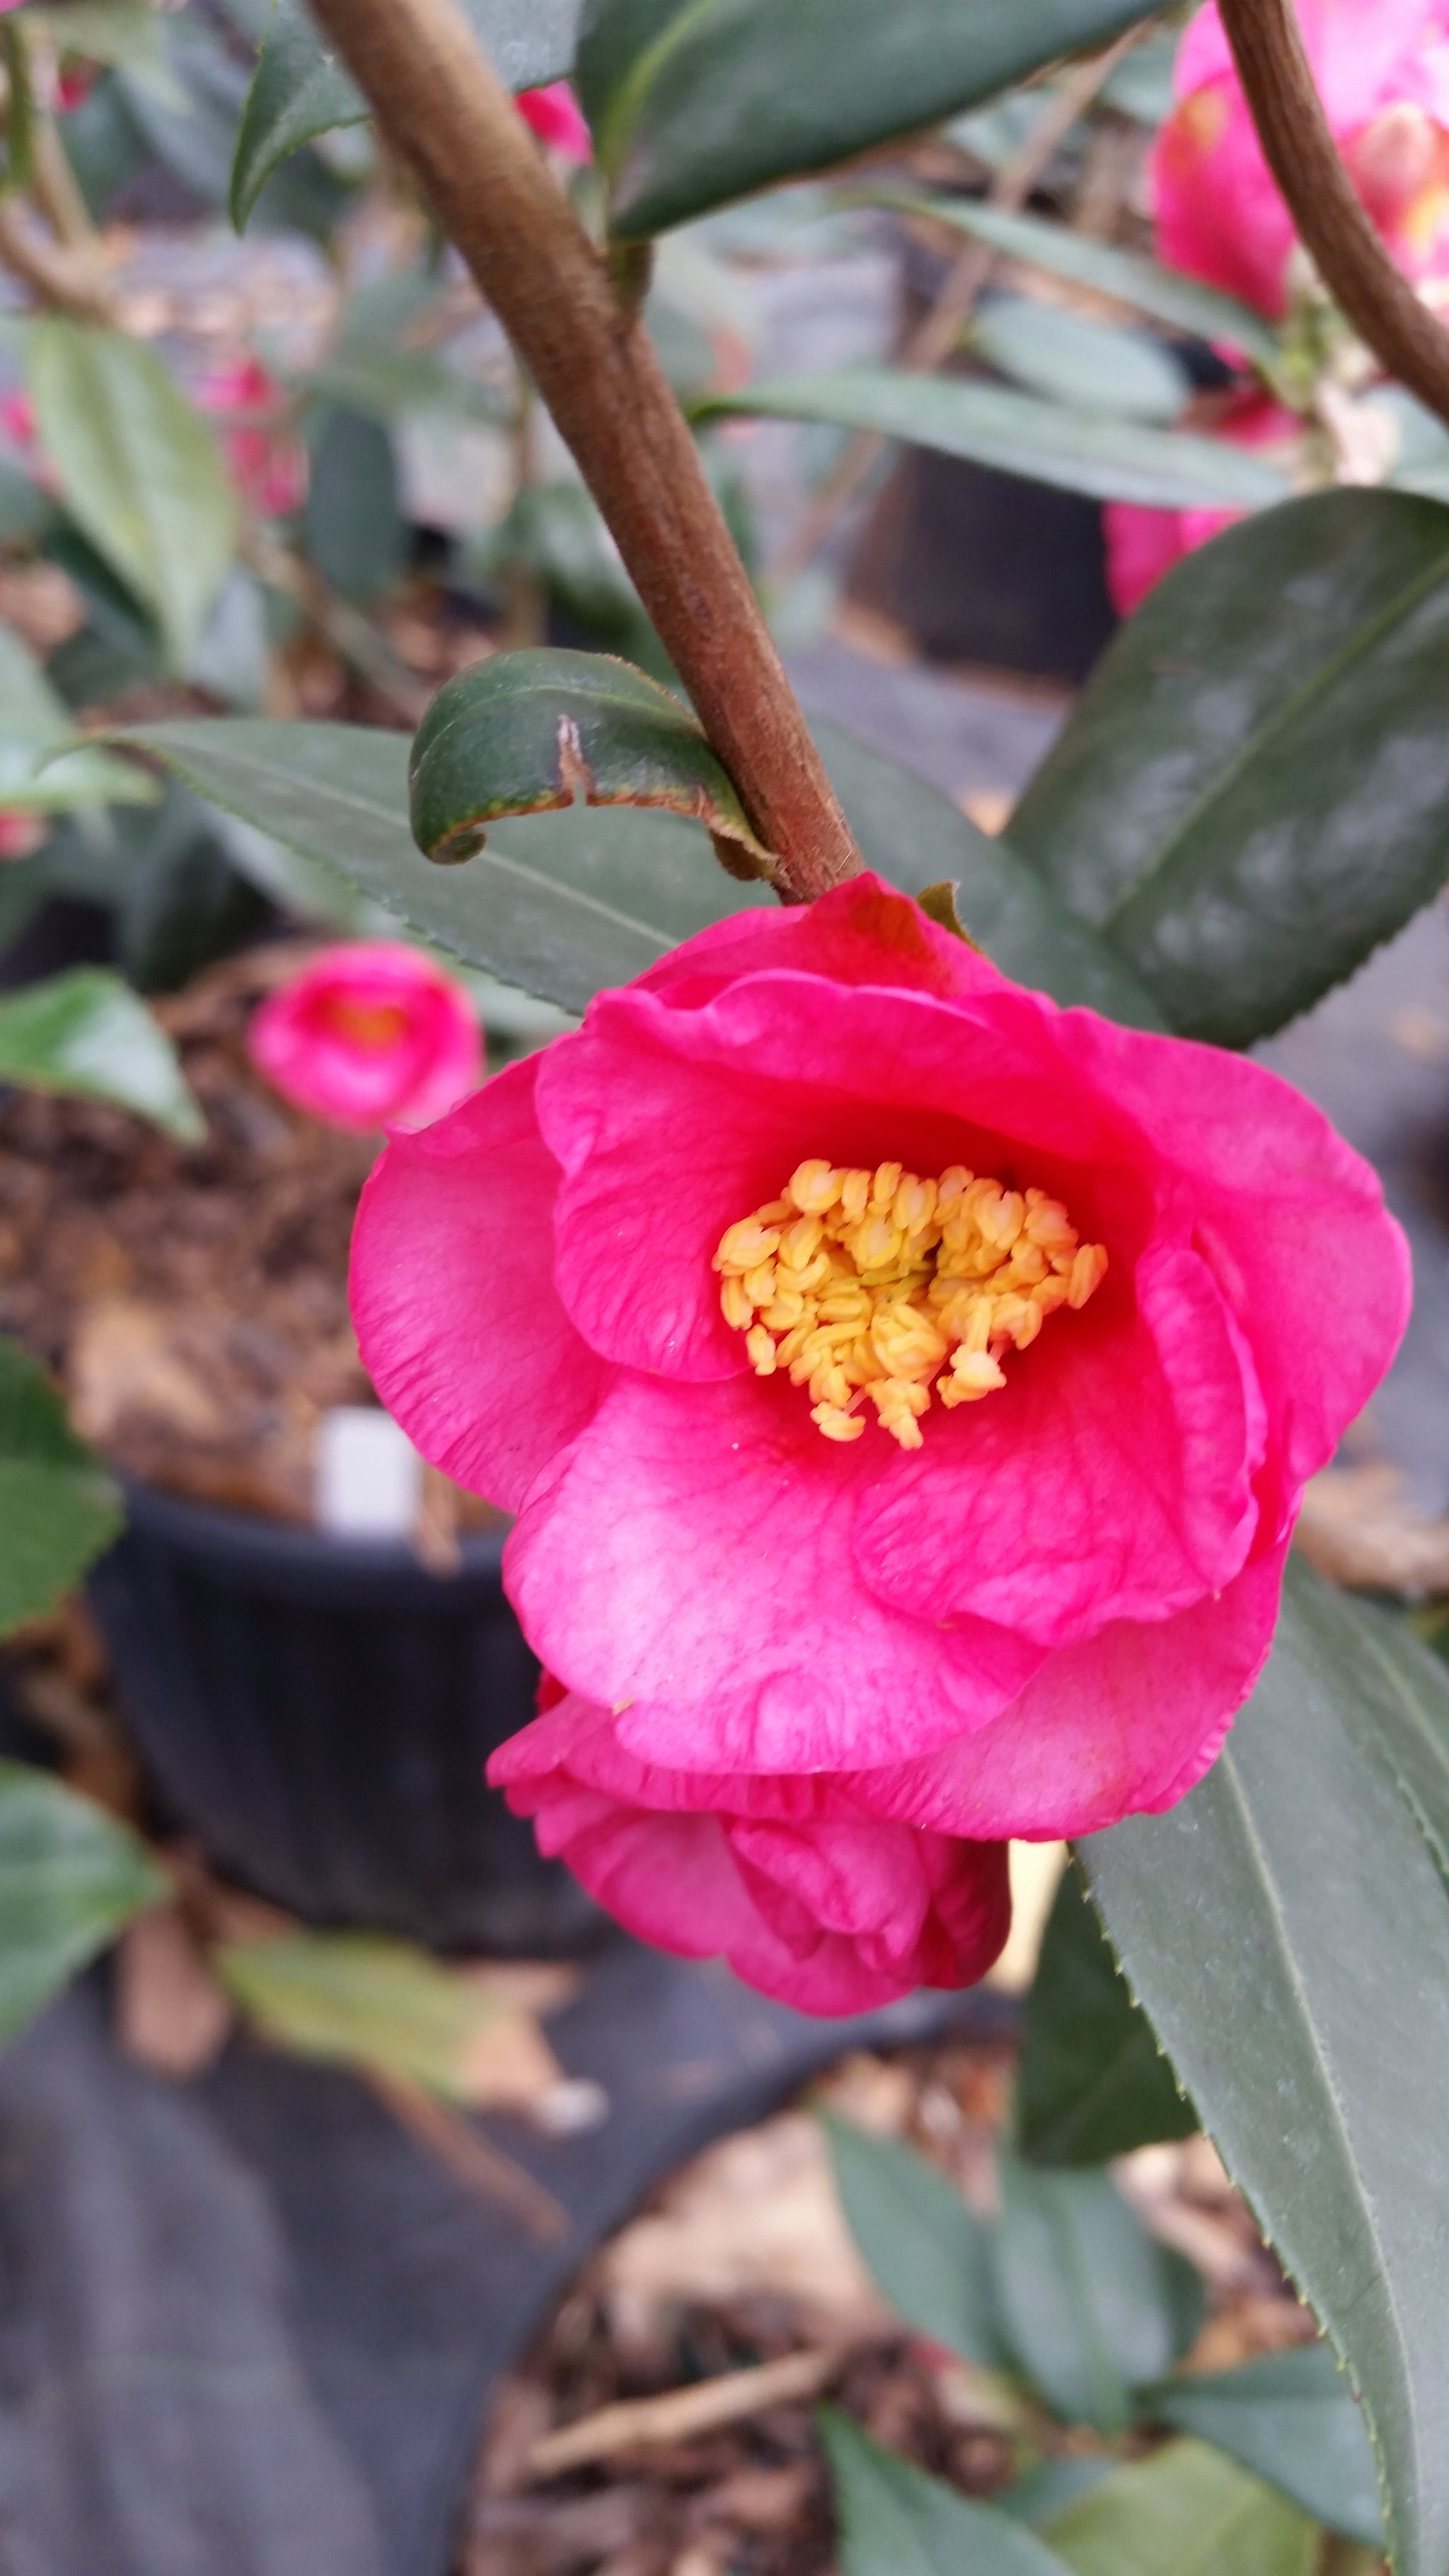 Camellia Crimson Candles- small bright rose-red single flowers, buds look like red candles and are heavily budded, producing tons of blooms